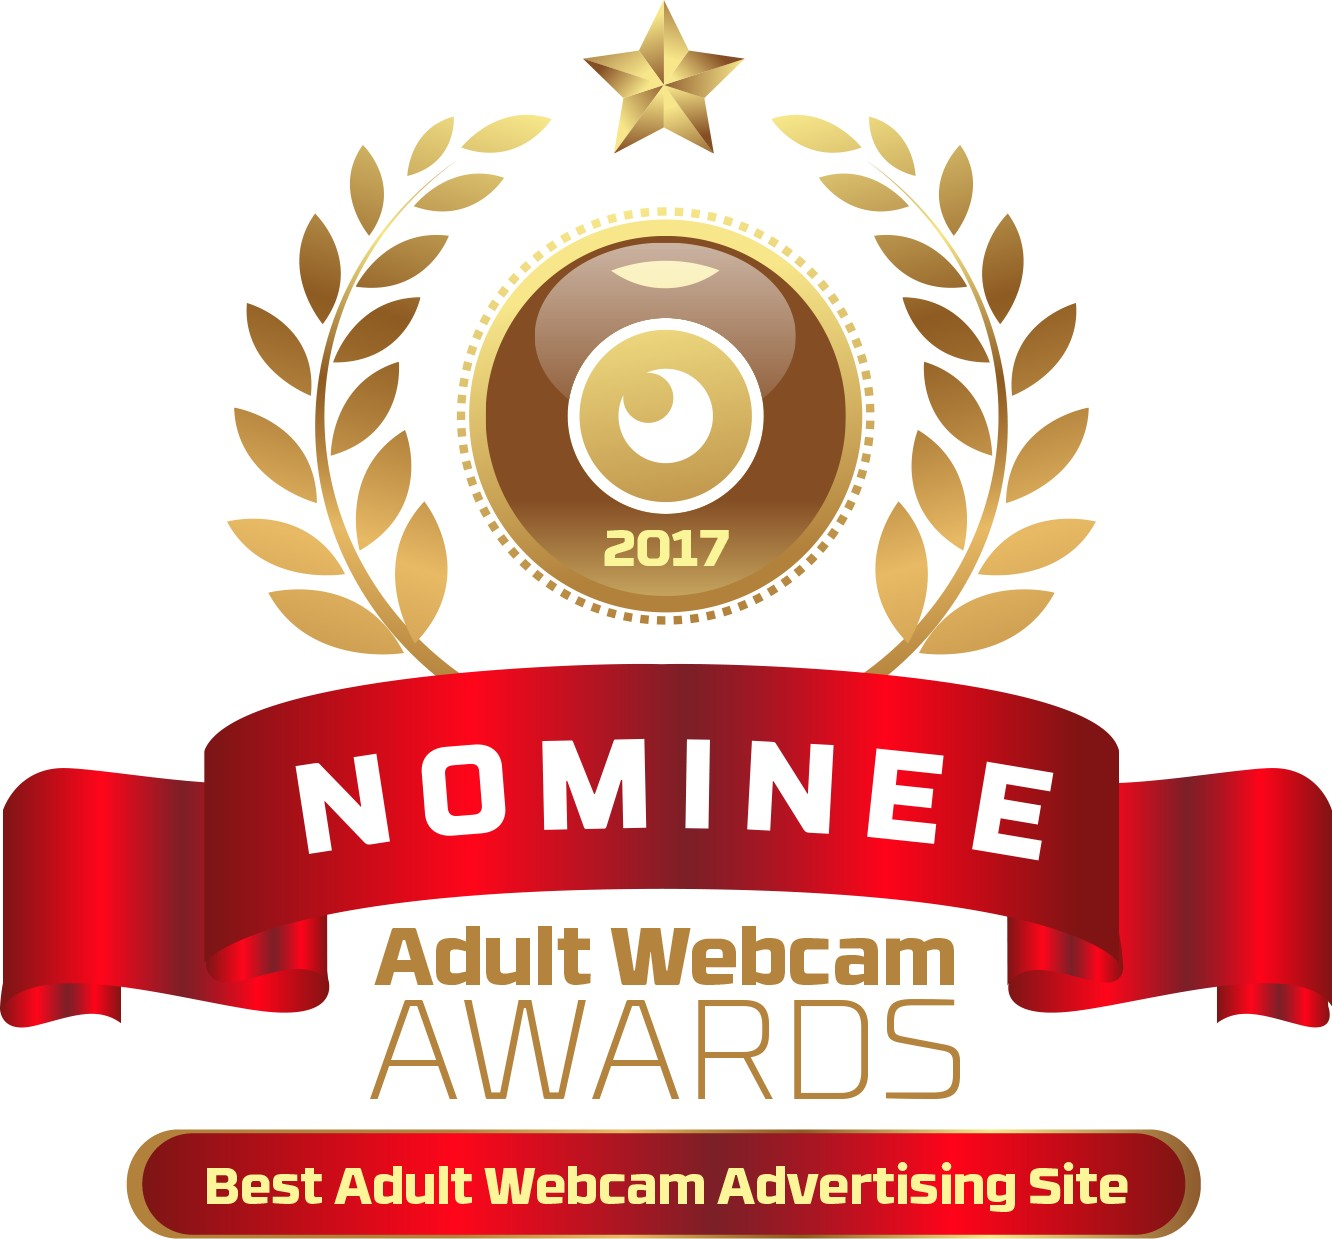 Best Adult Webcam Advertising Site